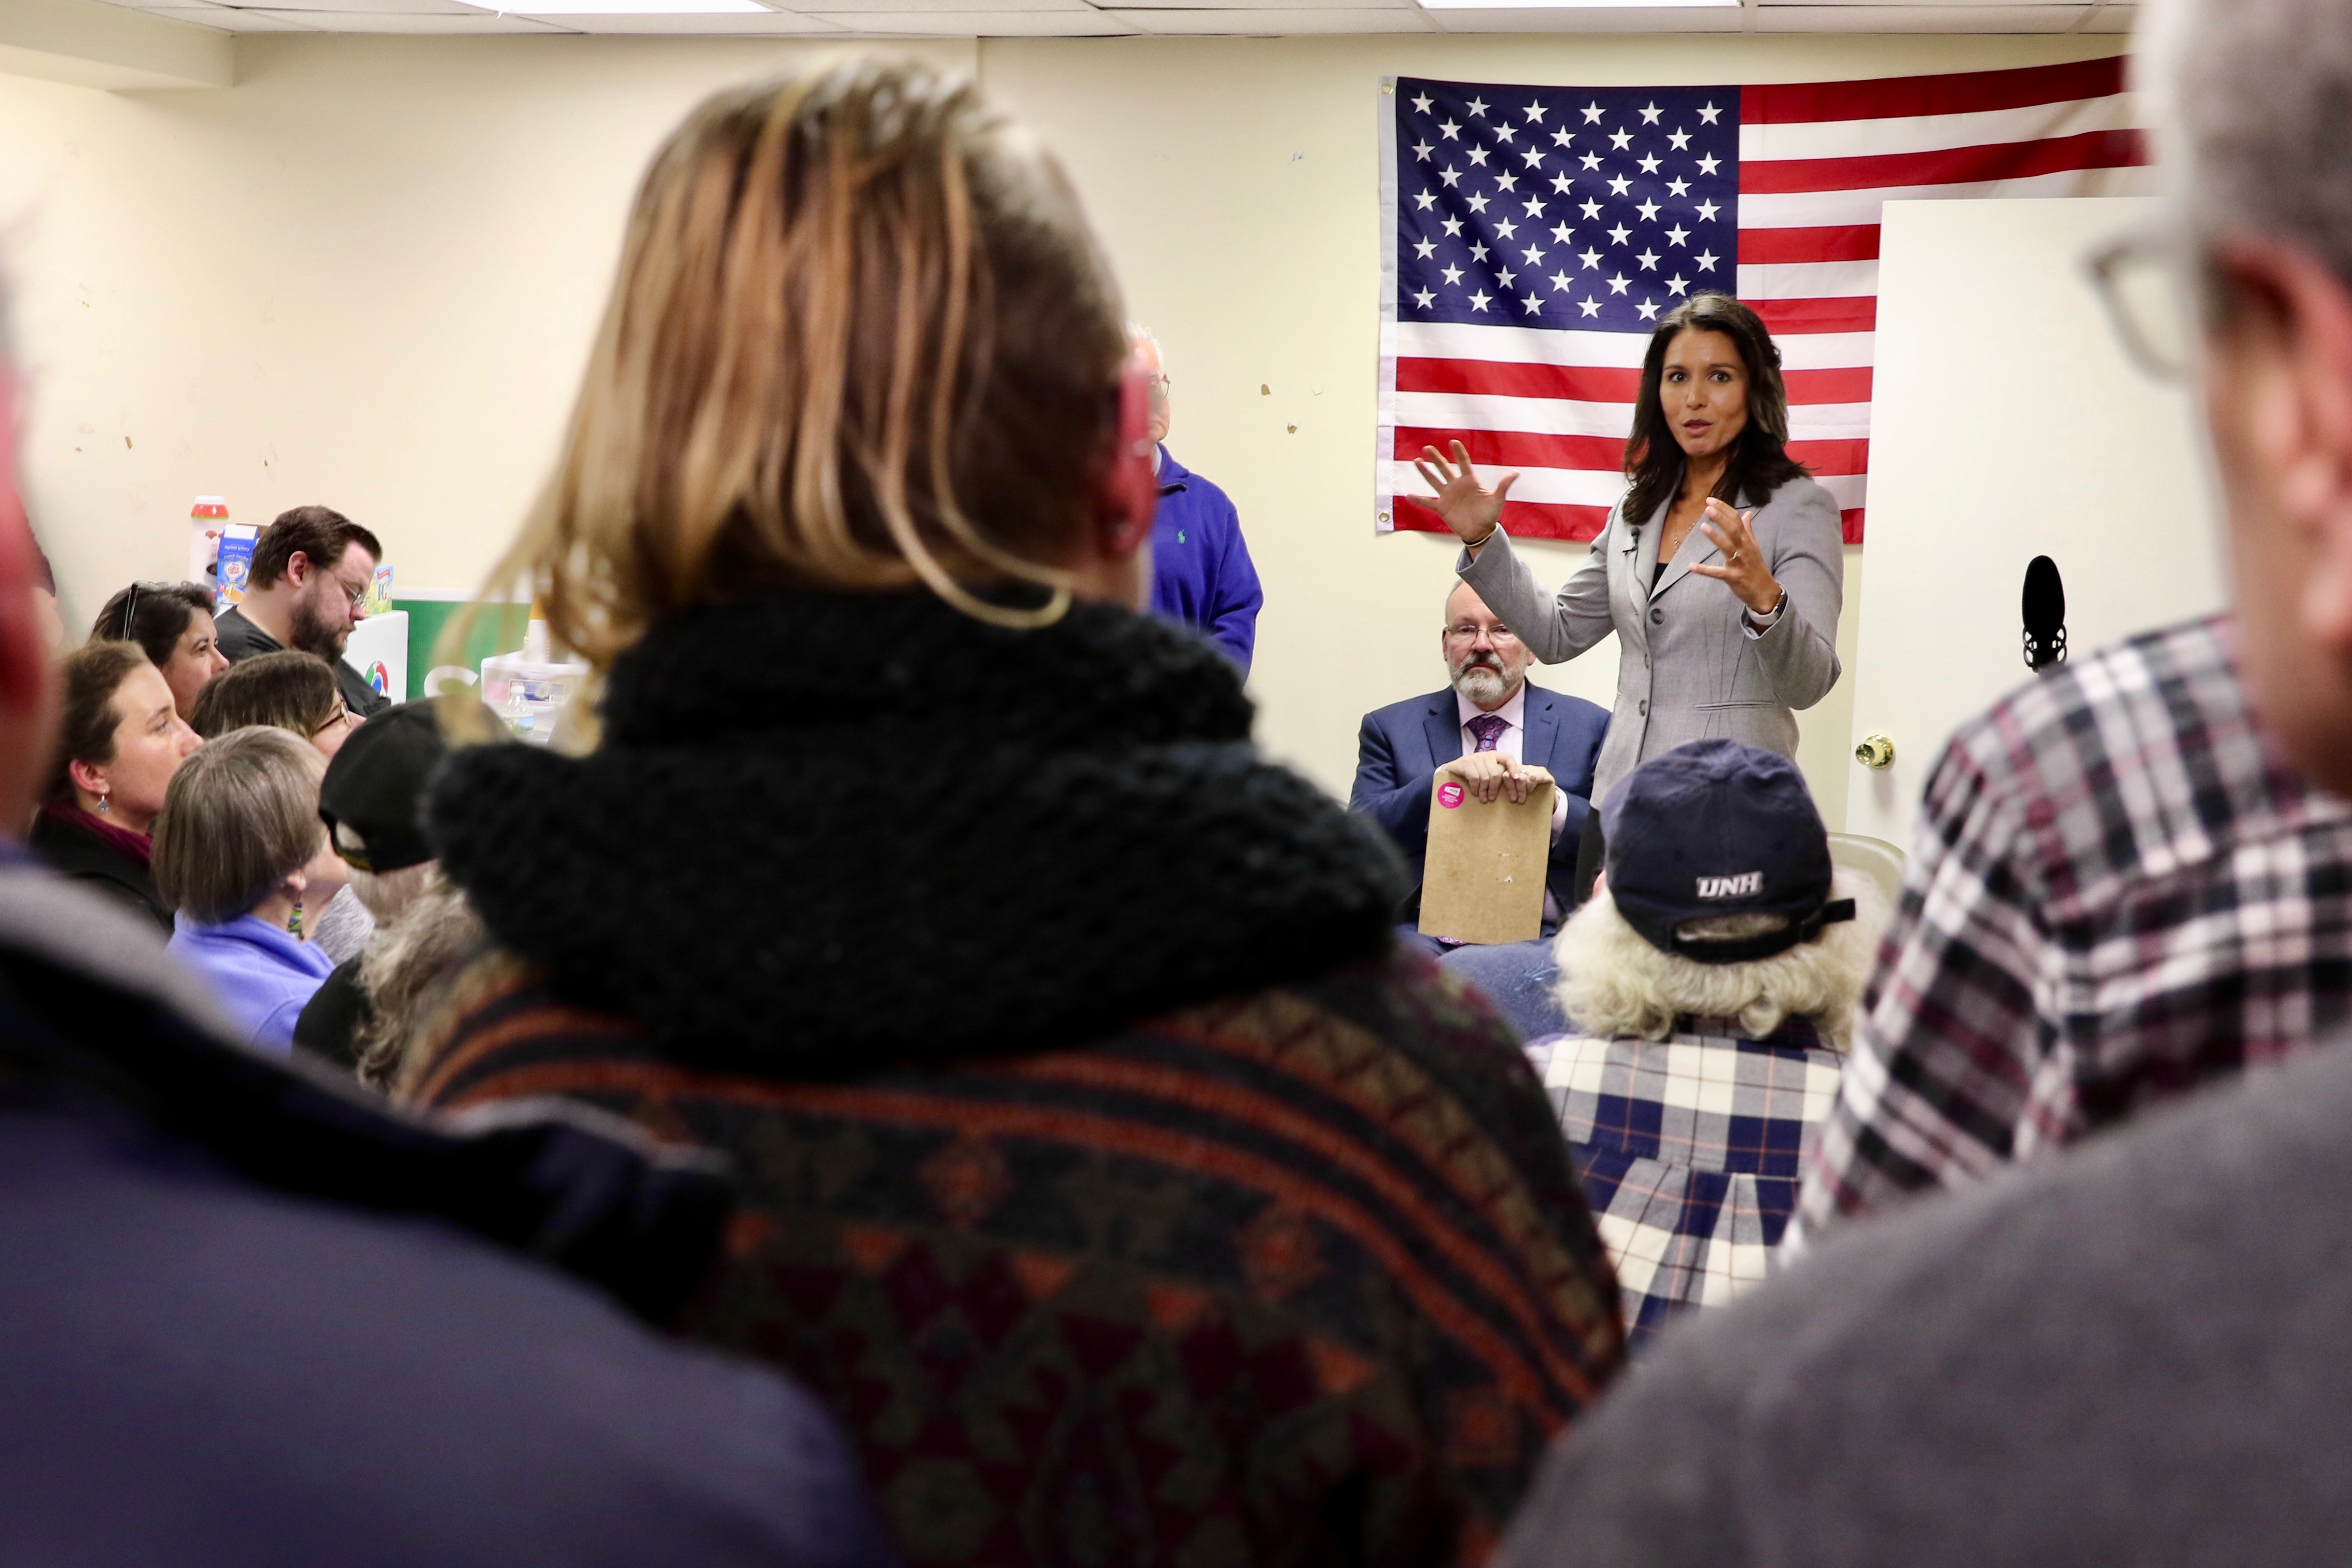 <p><strong>PRESIDENTIAL AMBITION:</strong> By year&#8217;s end, Hawaii Congresswoman Tulsi Gabbard was one of many Democrats testing the waters for a possible presidential bid in 2020. She spoke at this gathering in New Hampshire in December and also visited Vermont and Iowa.</p>